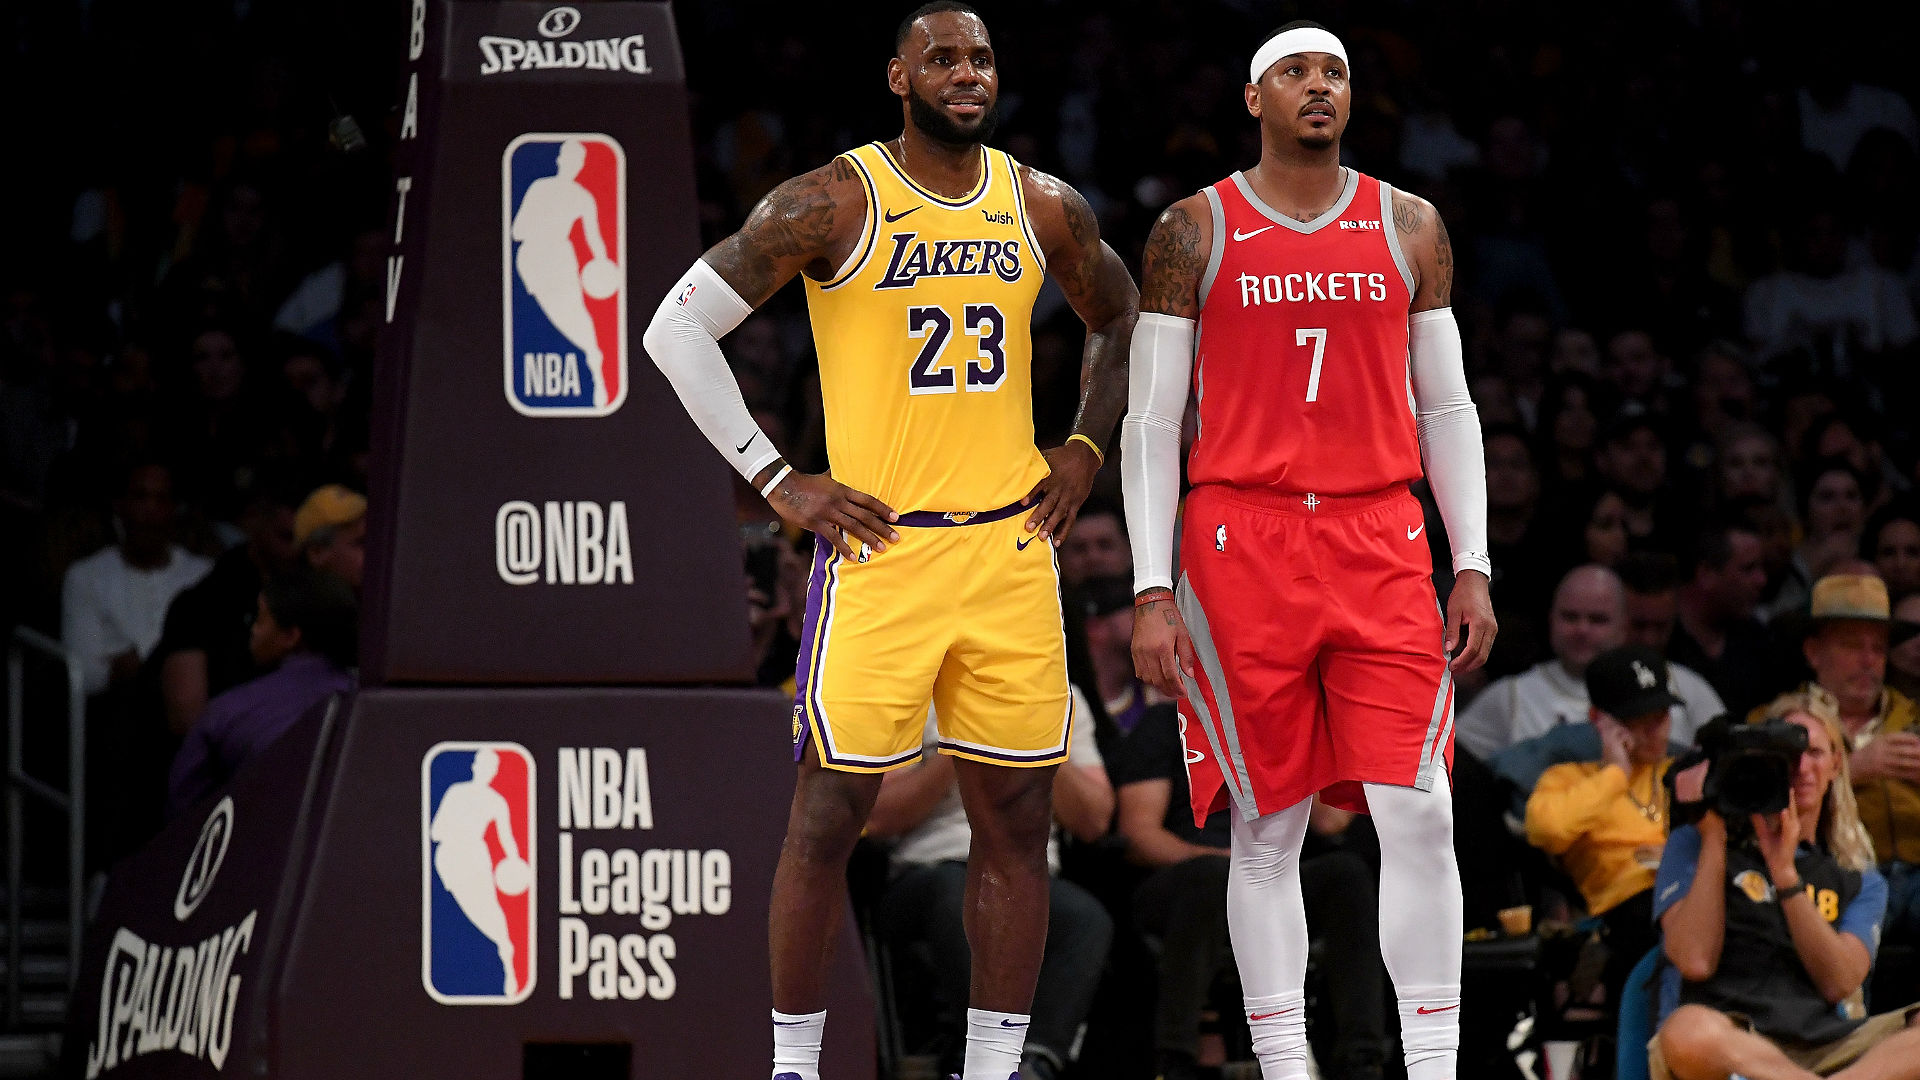 Lakers! LeBron James wants more context before responding to Kevin Durant's remarks